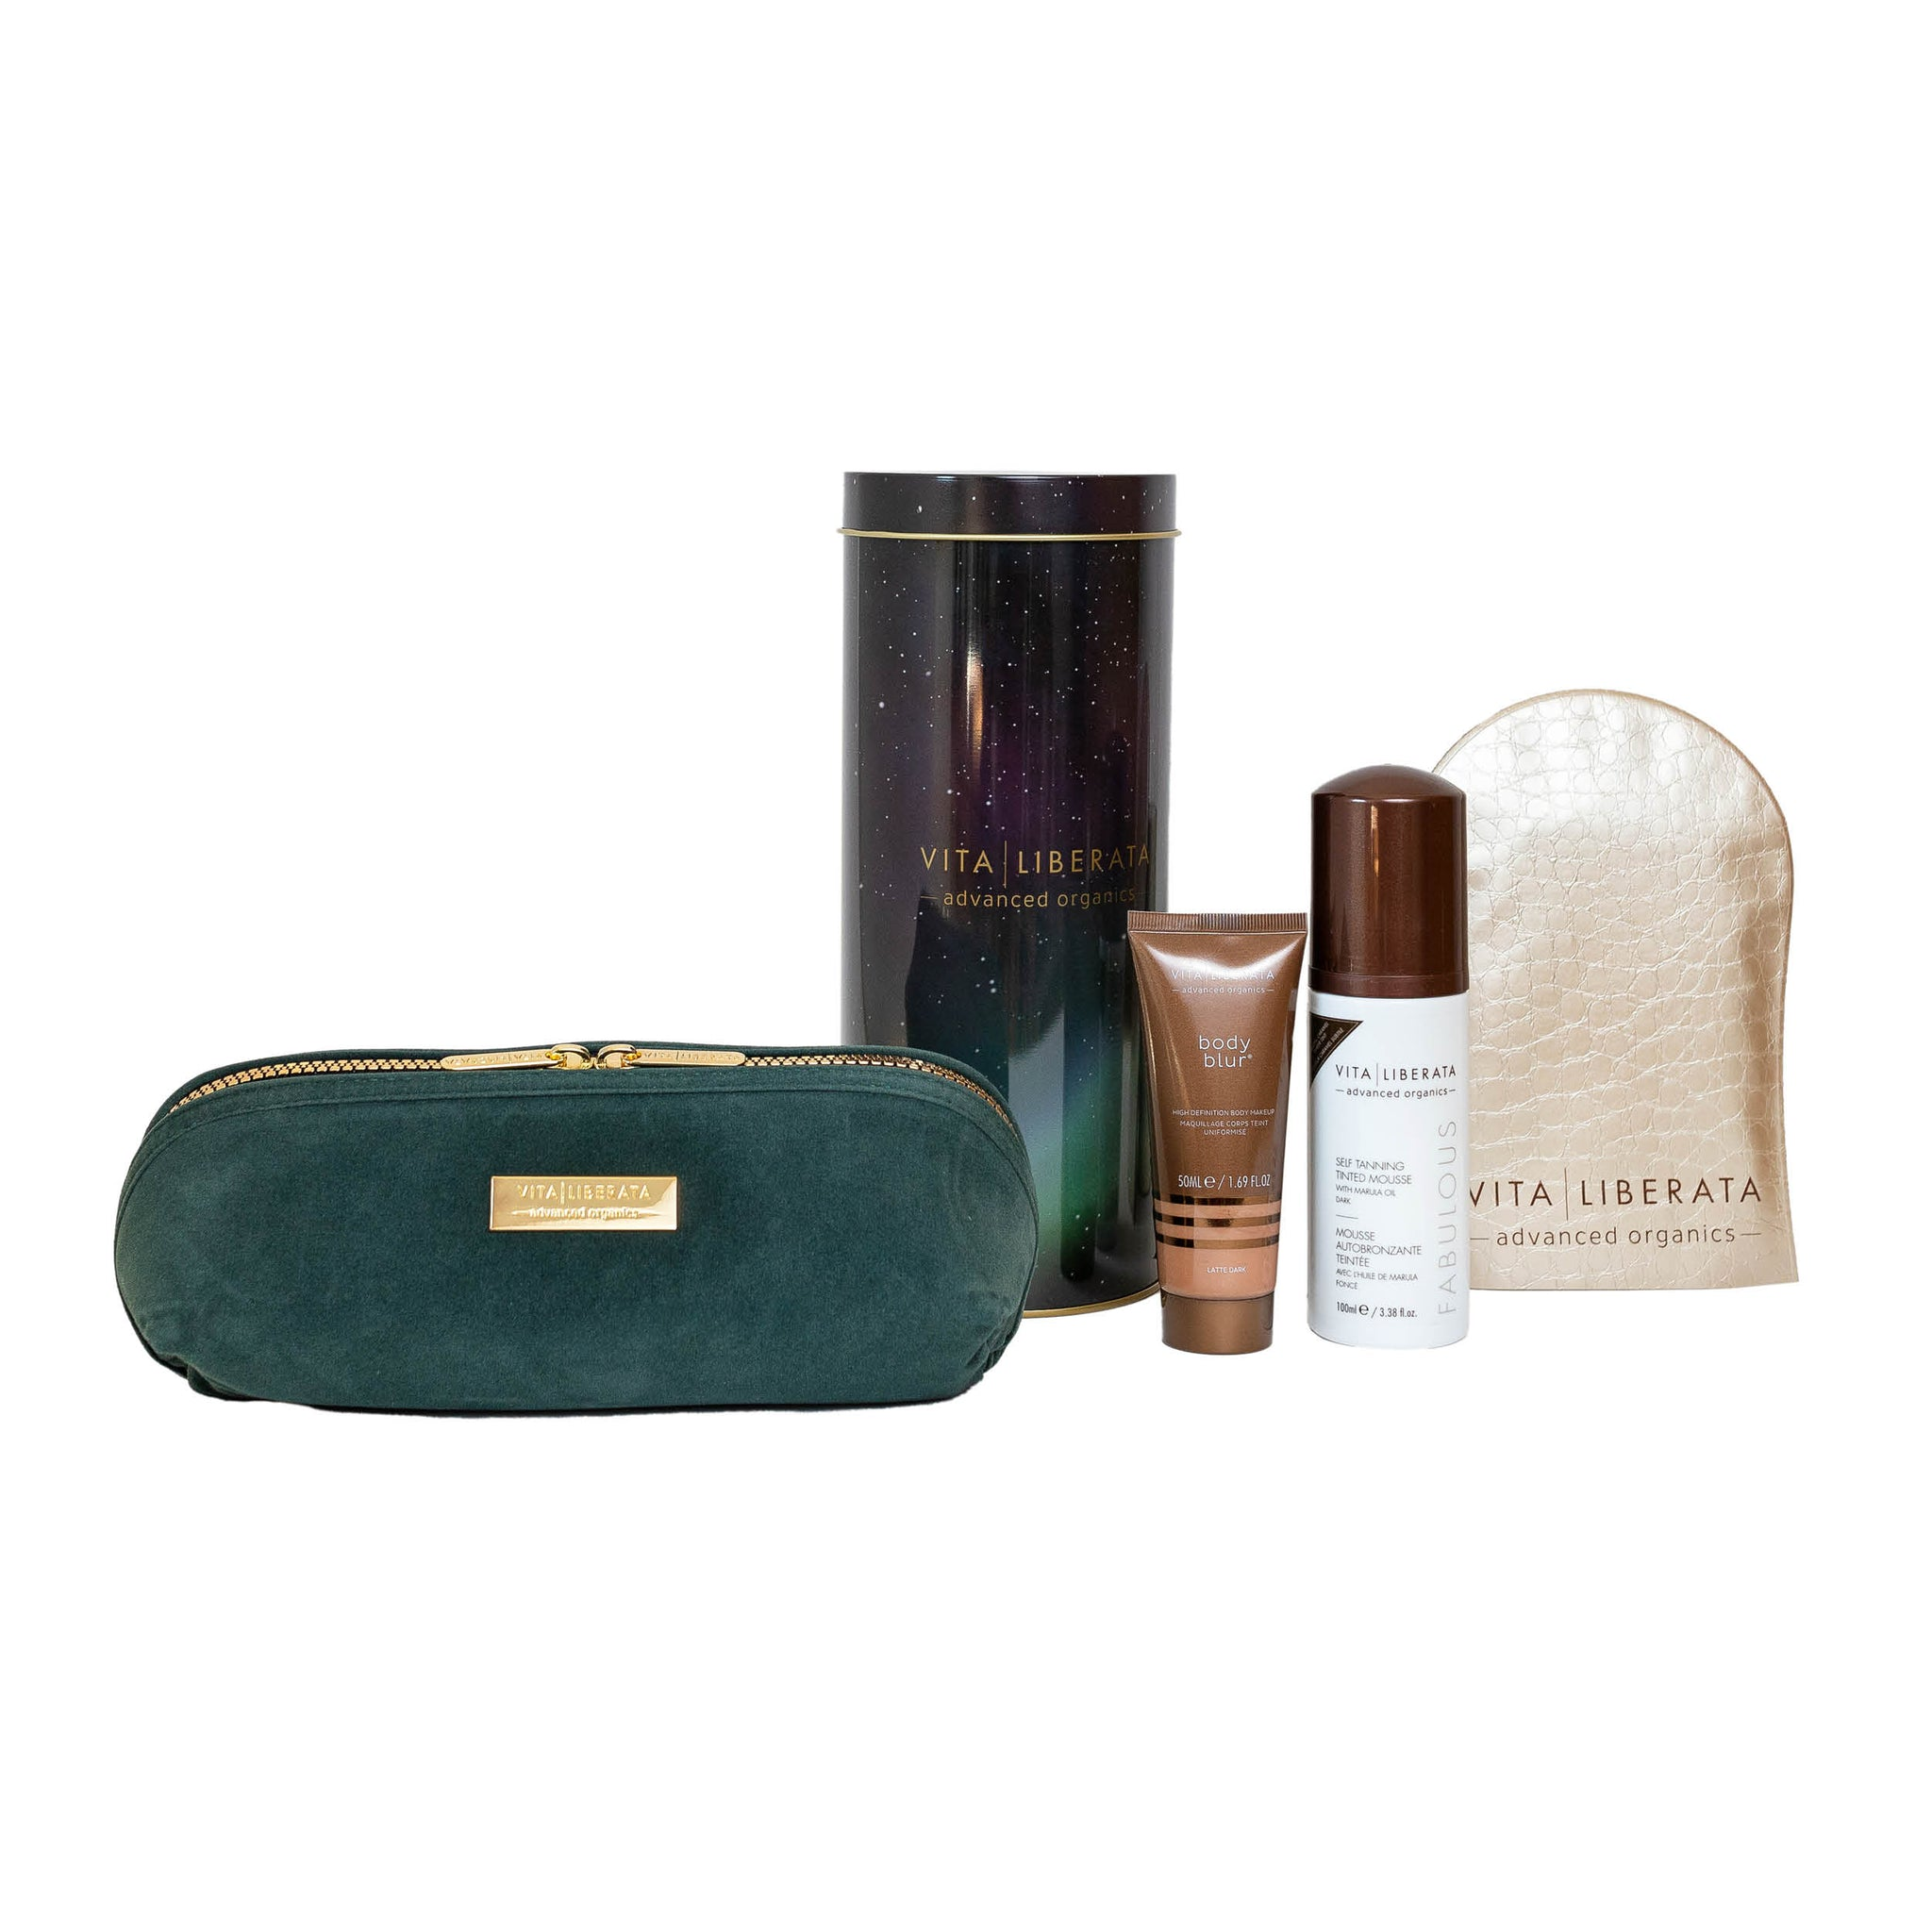 Vita Liberata Fabulous Tan & Glow Dark Mousse Gift Set